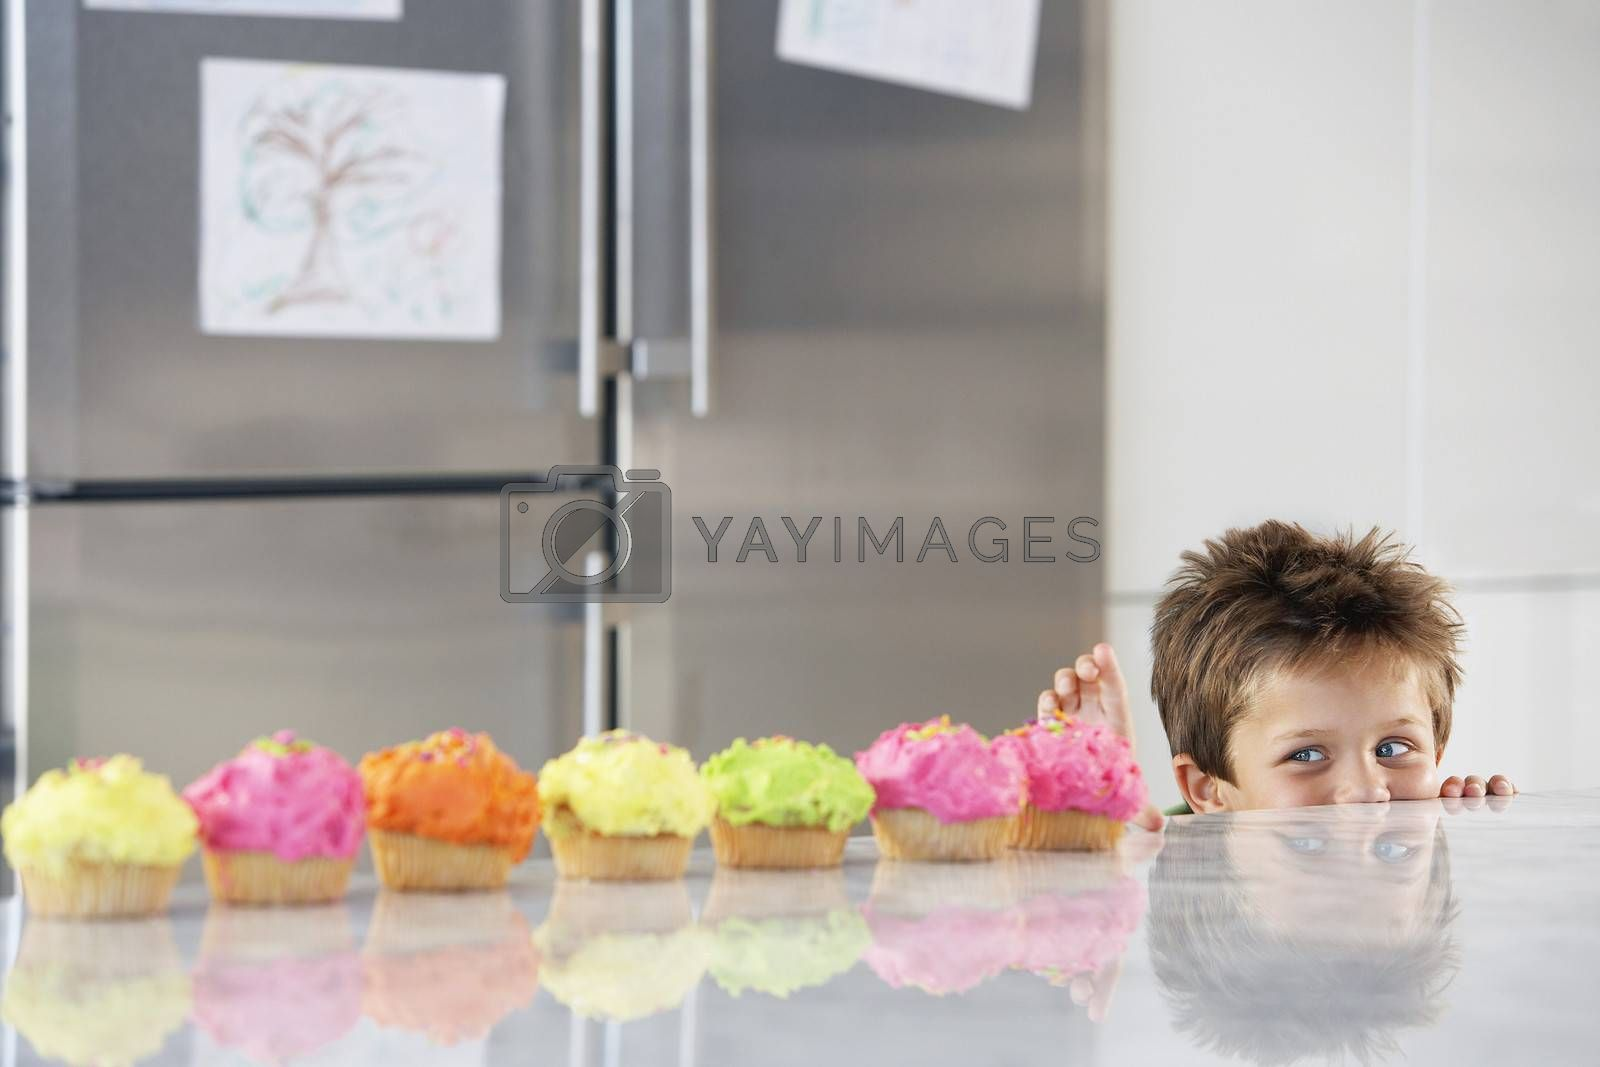 Royalty free image of Young boy peaking over counter at row of cupcakes in kitchen by moodboard